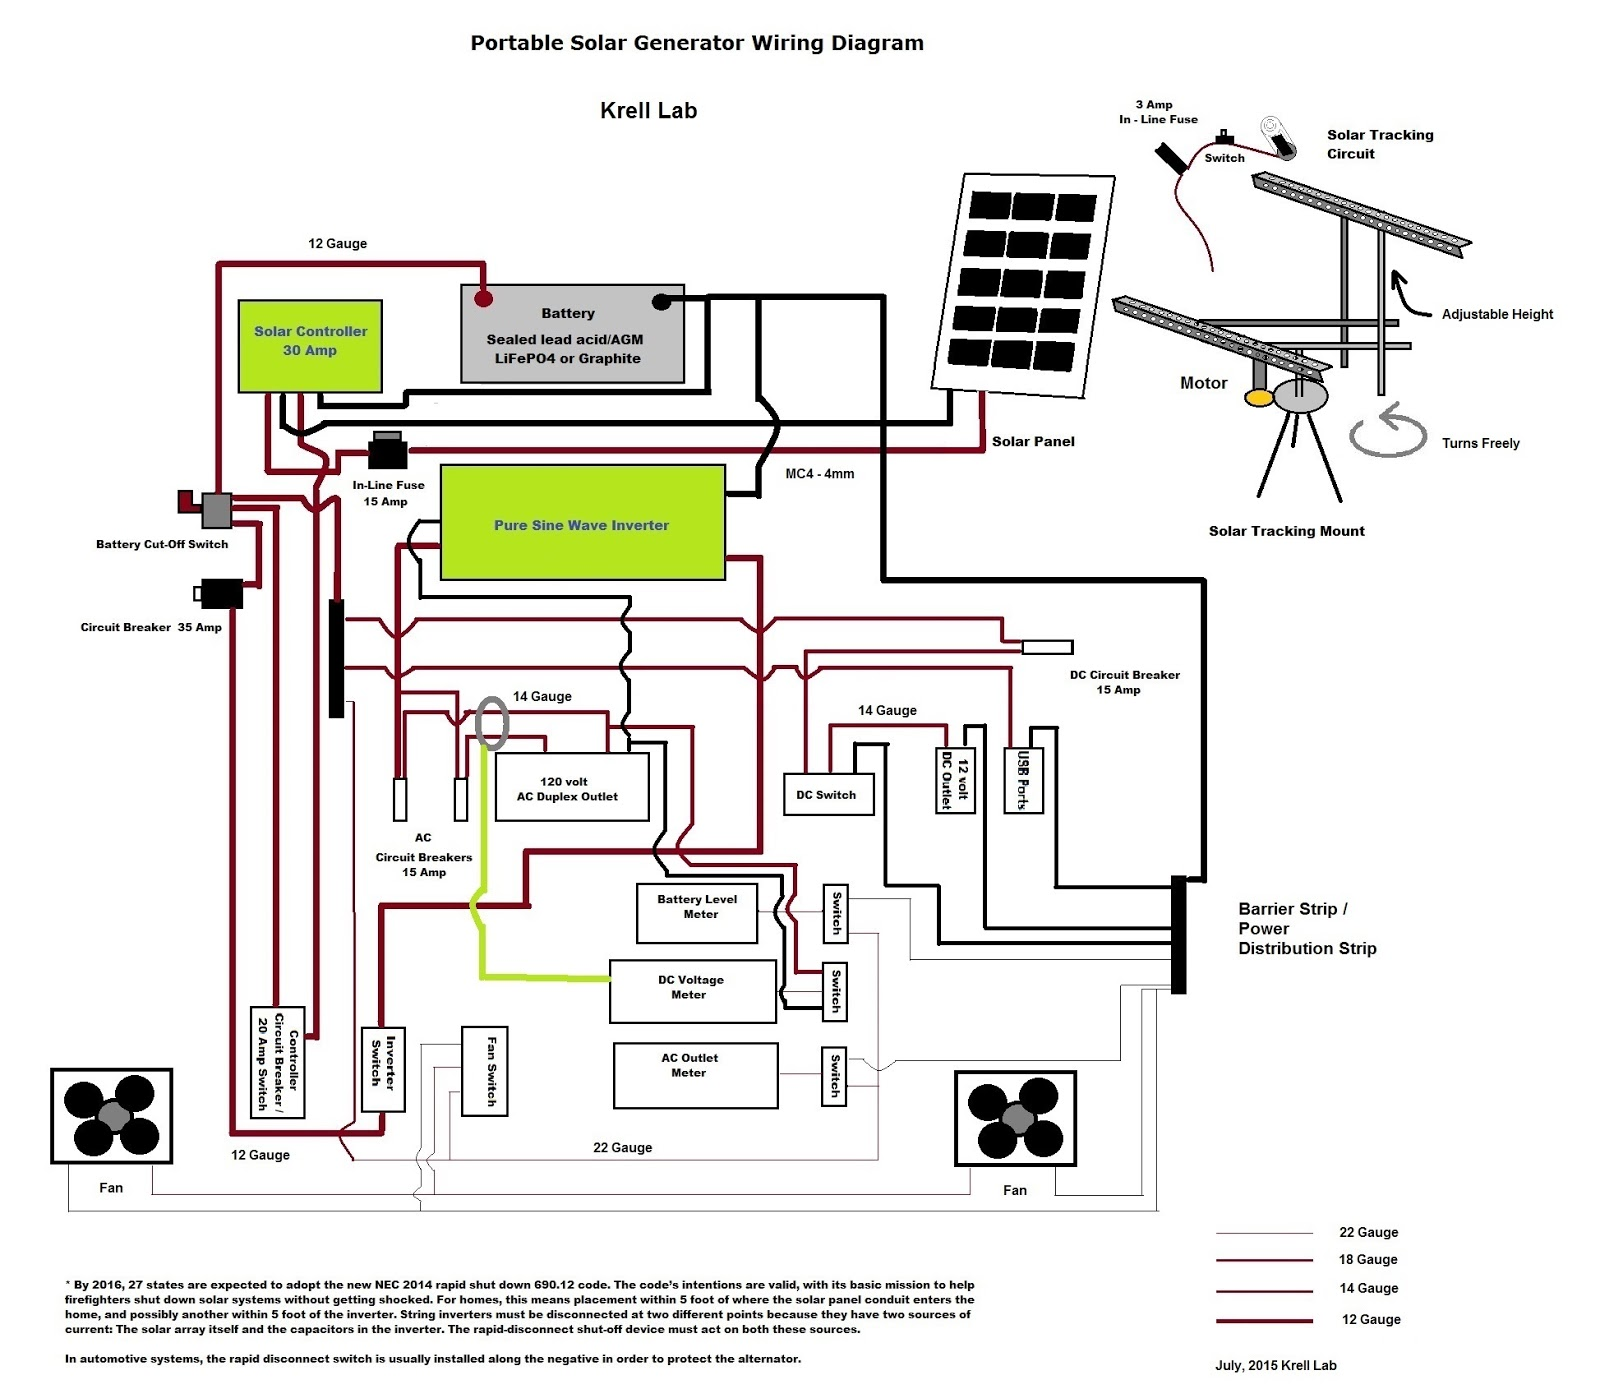 Read A Circuit Diagram Block Wiring Explanation How To Diagrams The Krell Lab Portable Solar Generator In Battery Box